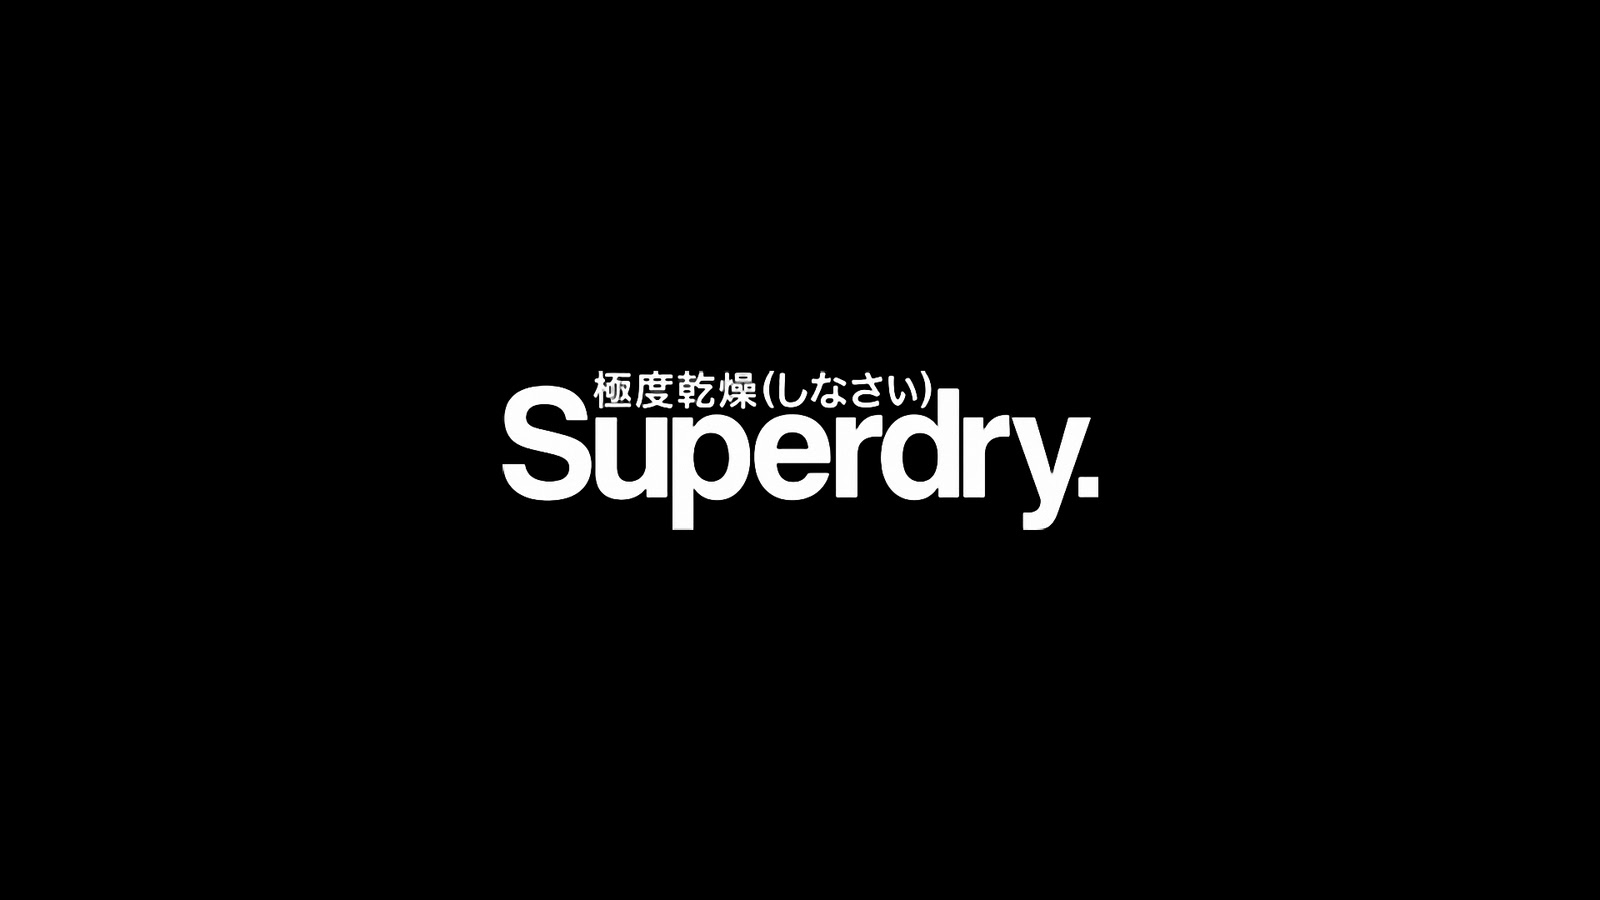 Allure Du Courant Style Spotlight Superdry Clothing 1600x900